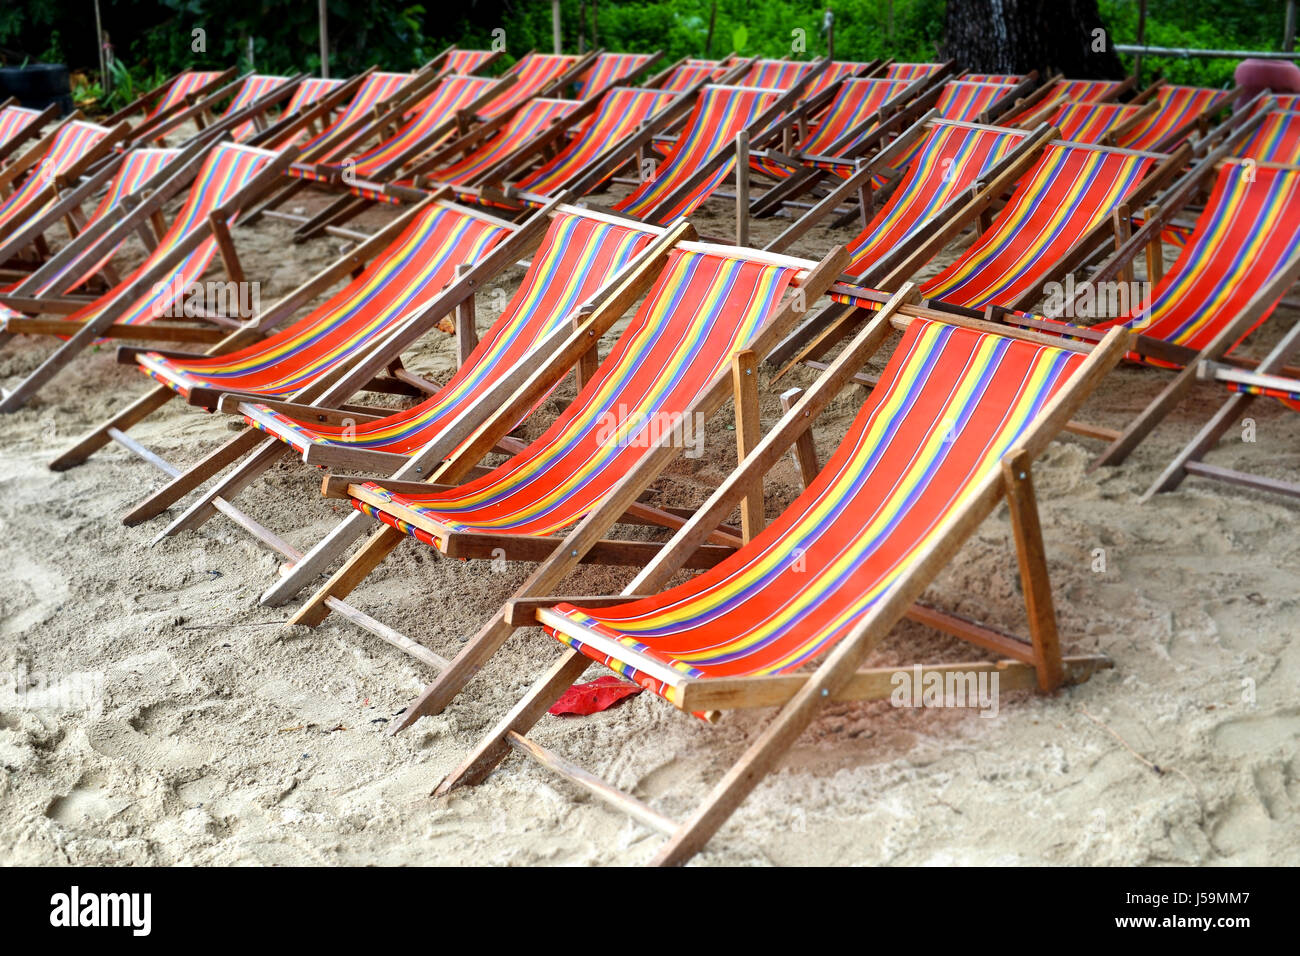 Sunbathing Chairs Pile Of Relaxation Sunbathing Chairs On Beach Stock Photo